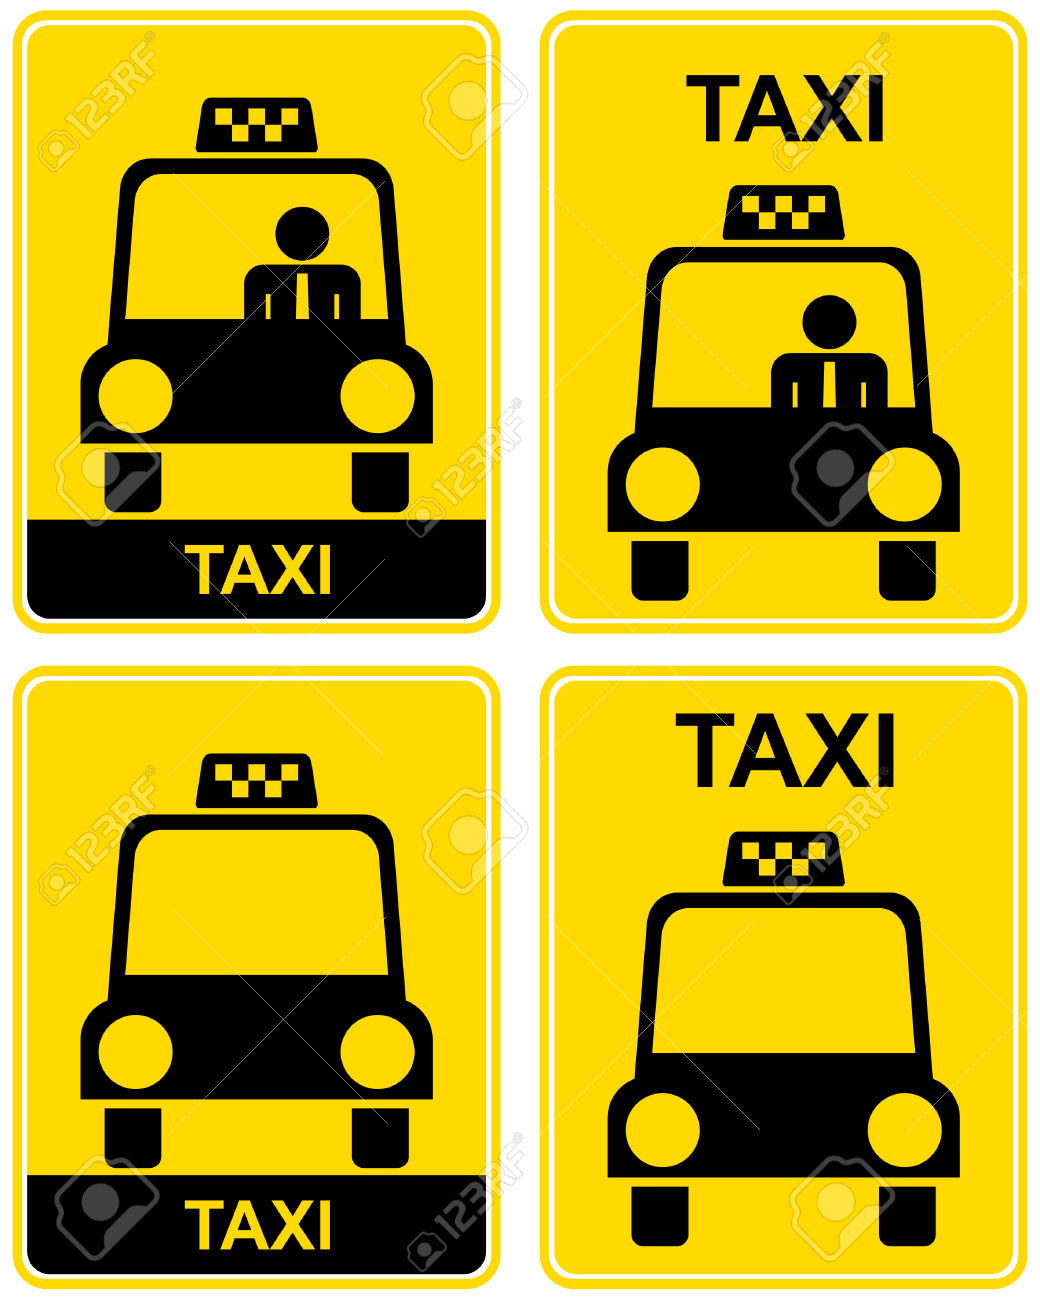 Vector Illustration Of A Yellow Road Sign.